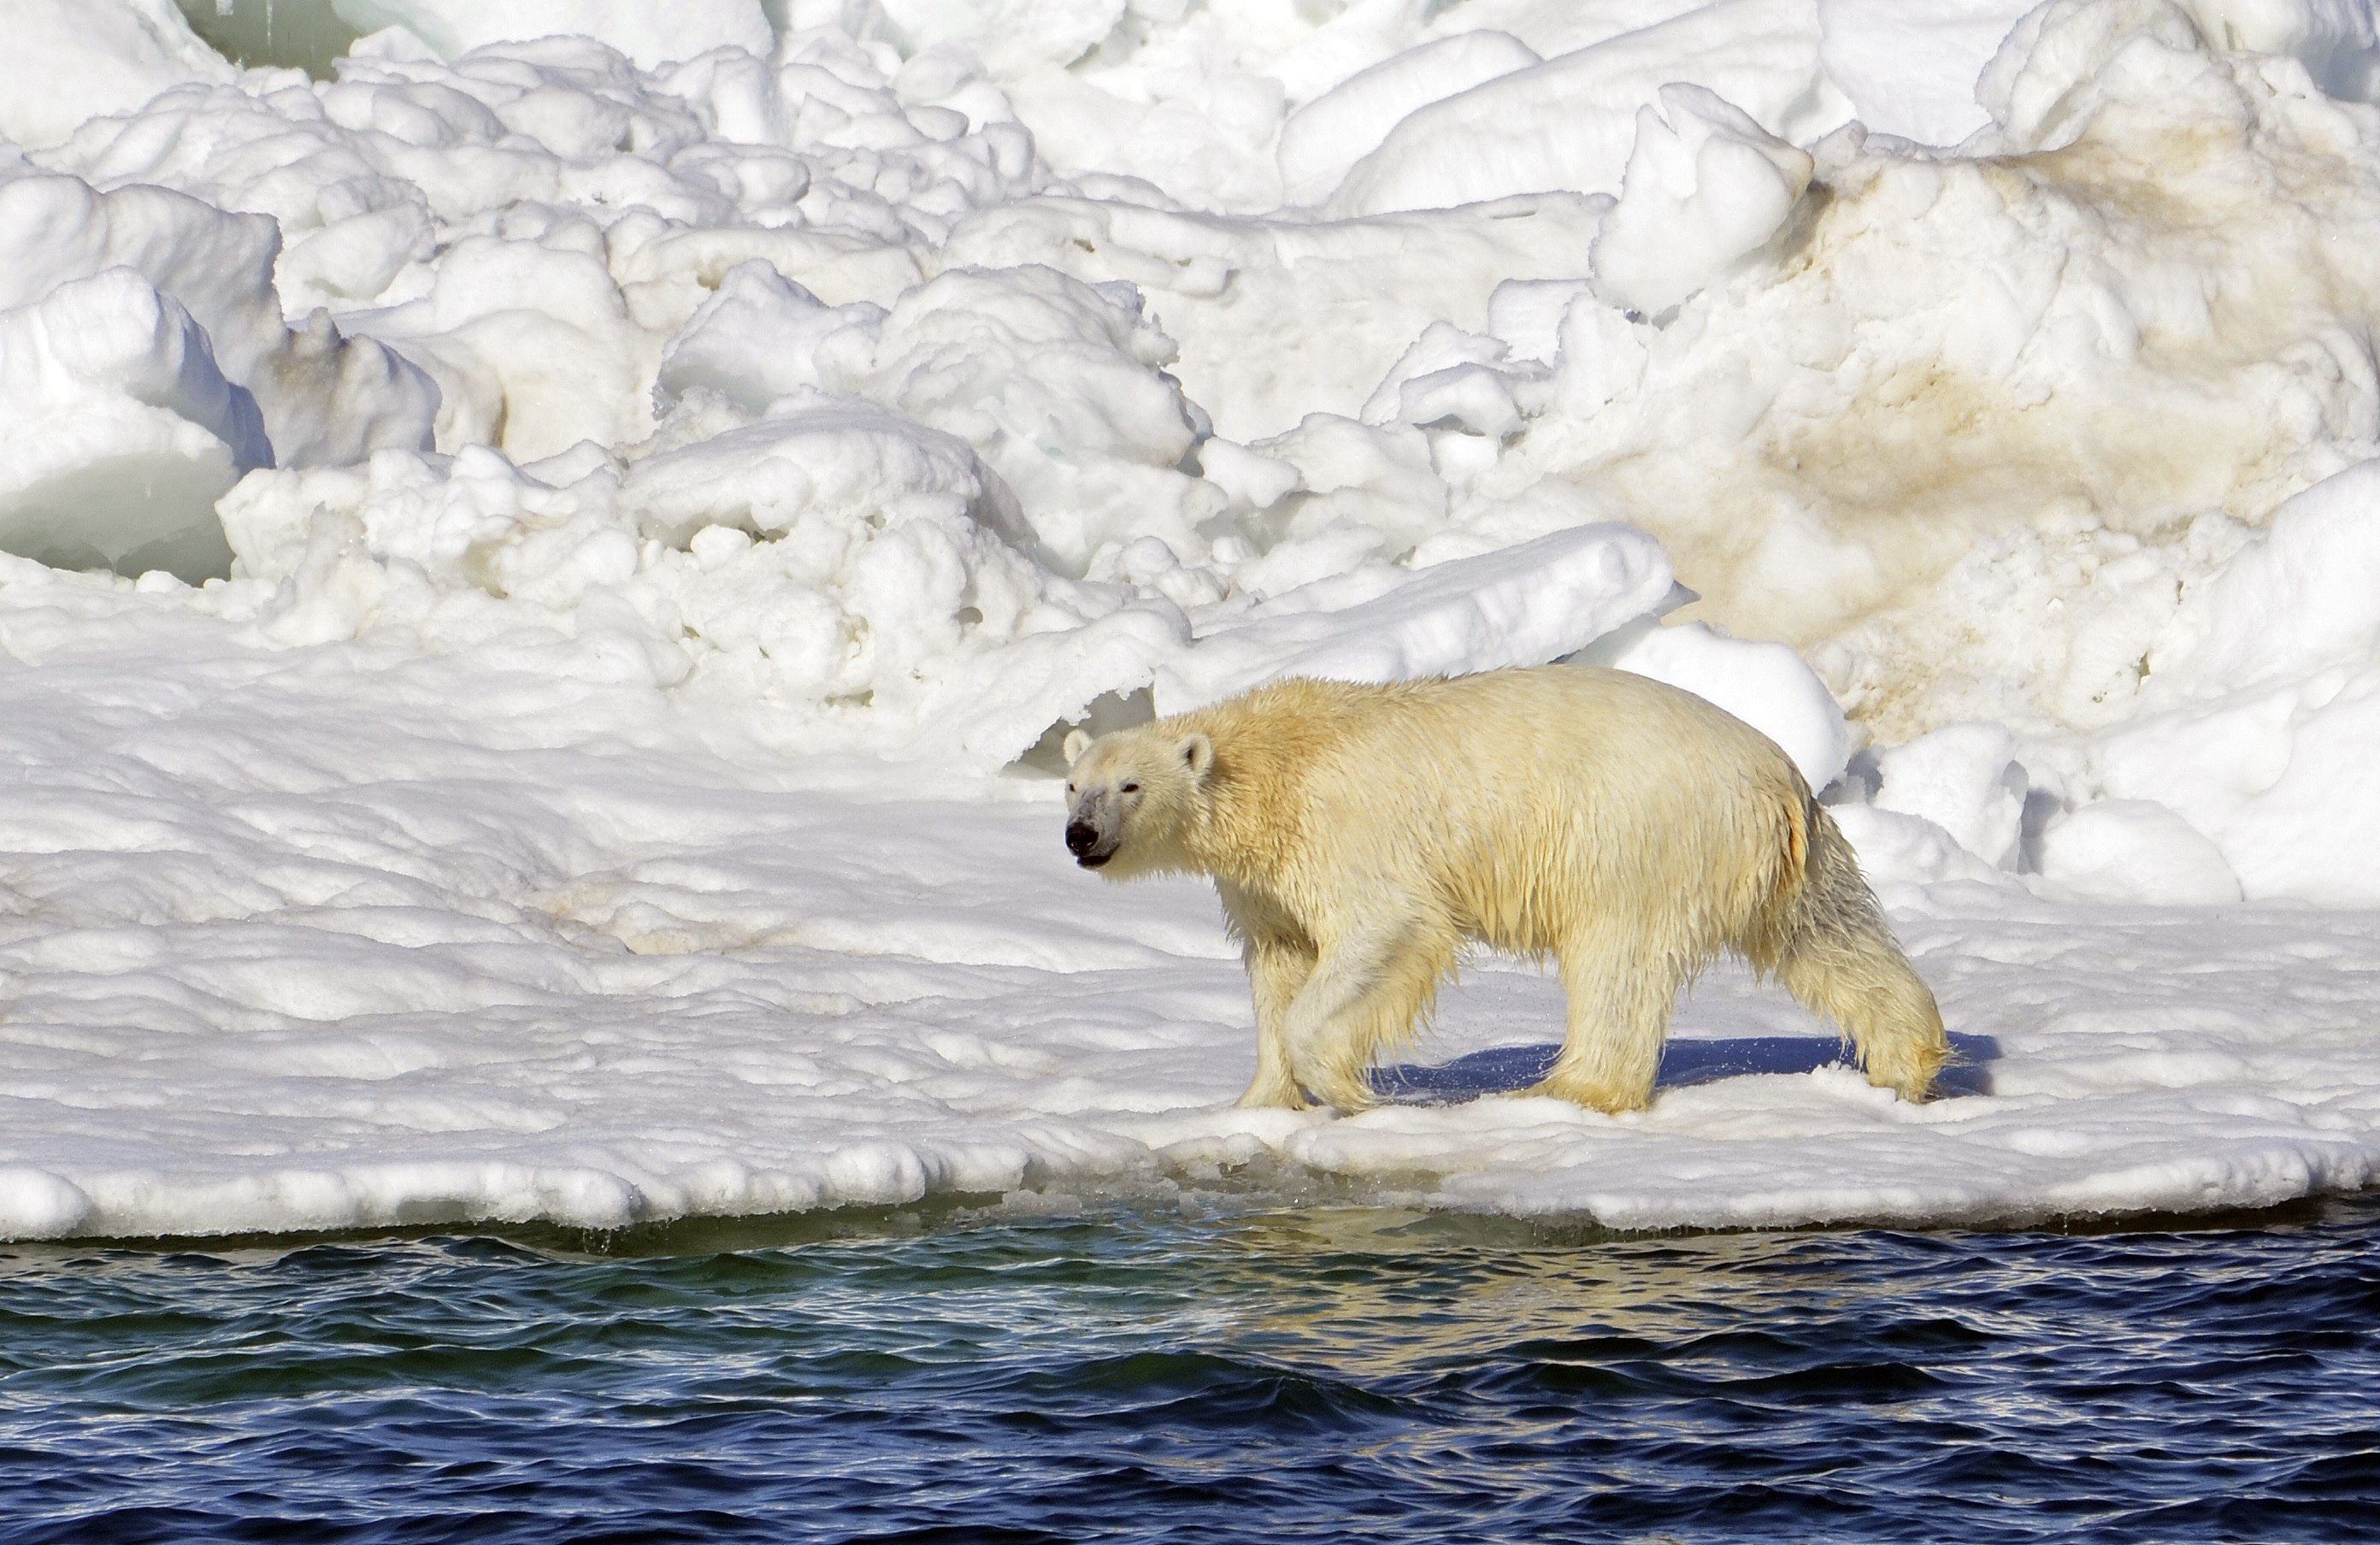 Most polar bear populations will collapse by century's end without emissions cuts, study says